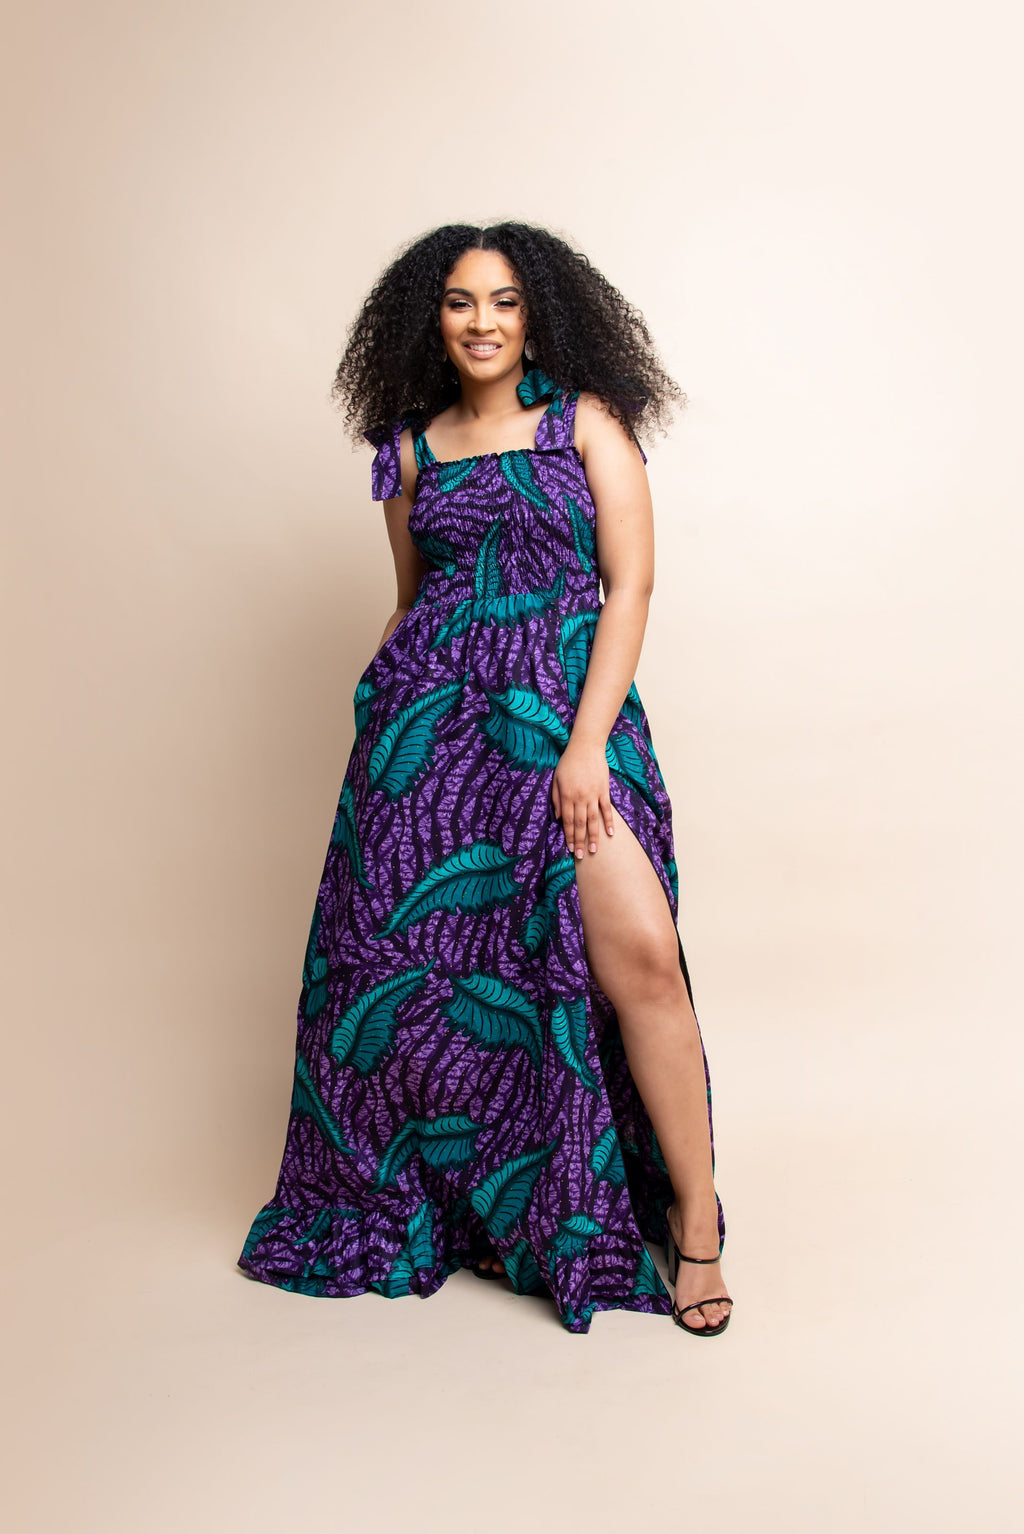 UMMI African print off smocked maxi dress (TIE)